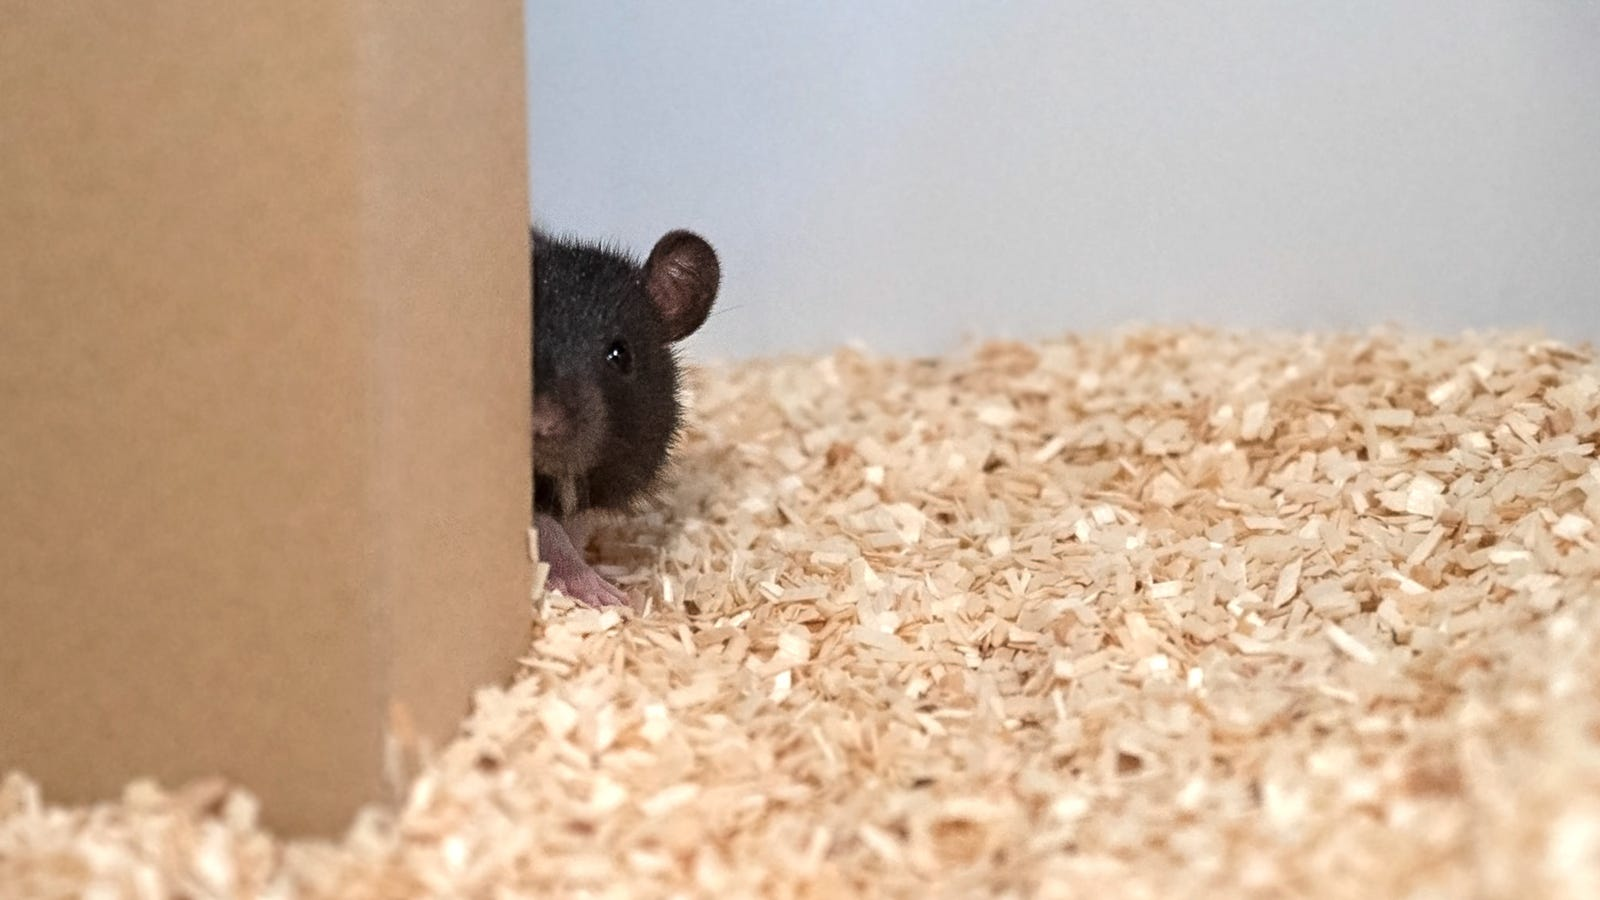 Scientists Taught Rats to Play Hide-and-Seek, and They're Actually Pretty Good at It